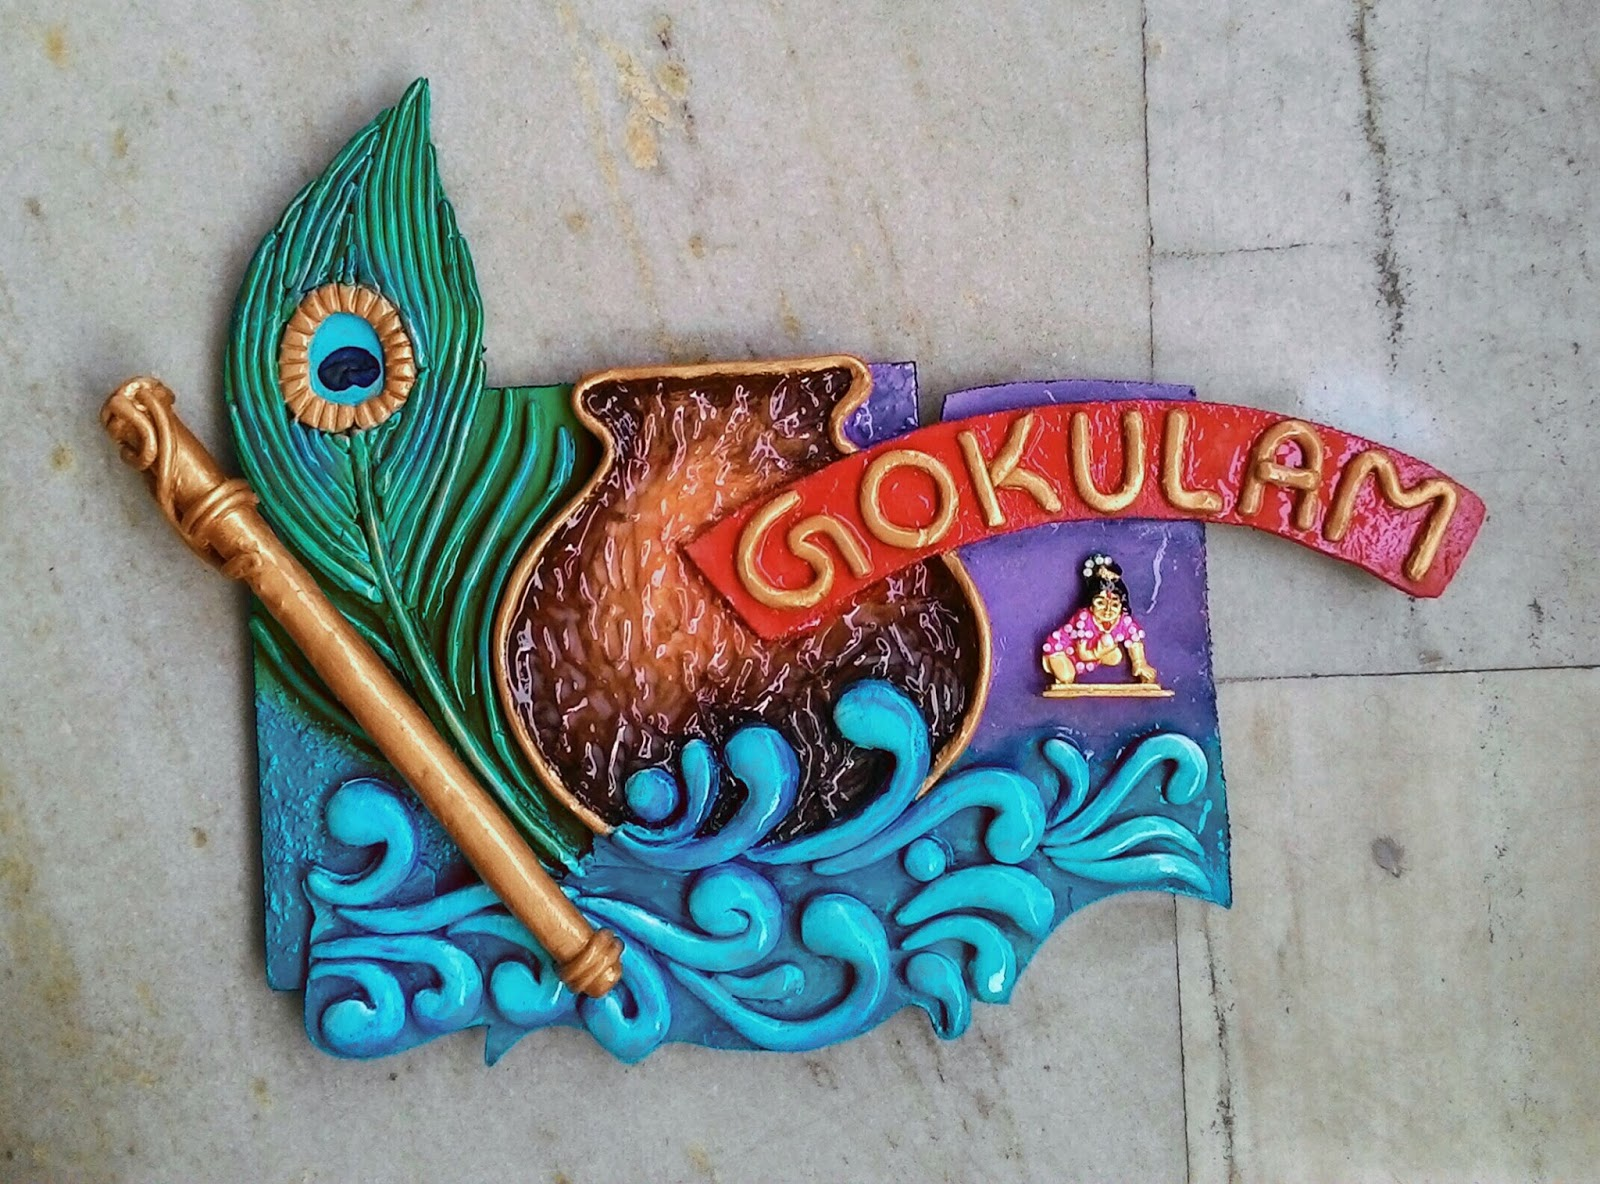 3d mural nameplate with clay work for Mural name plate